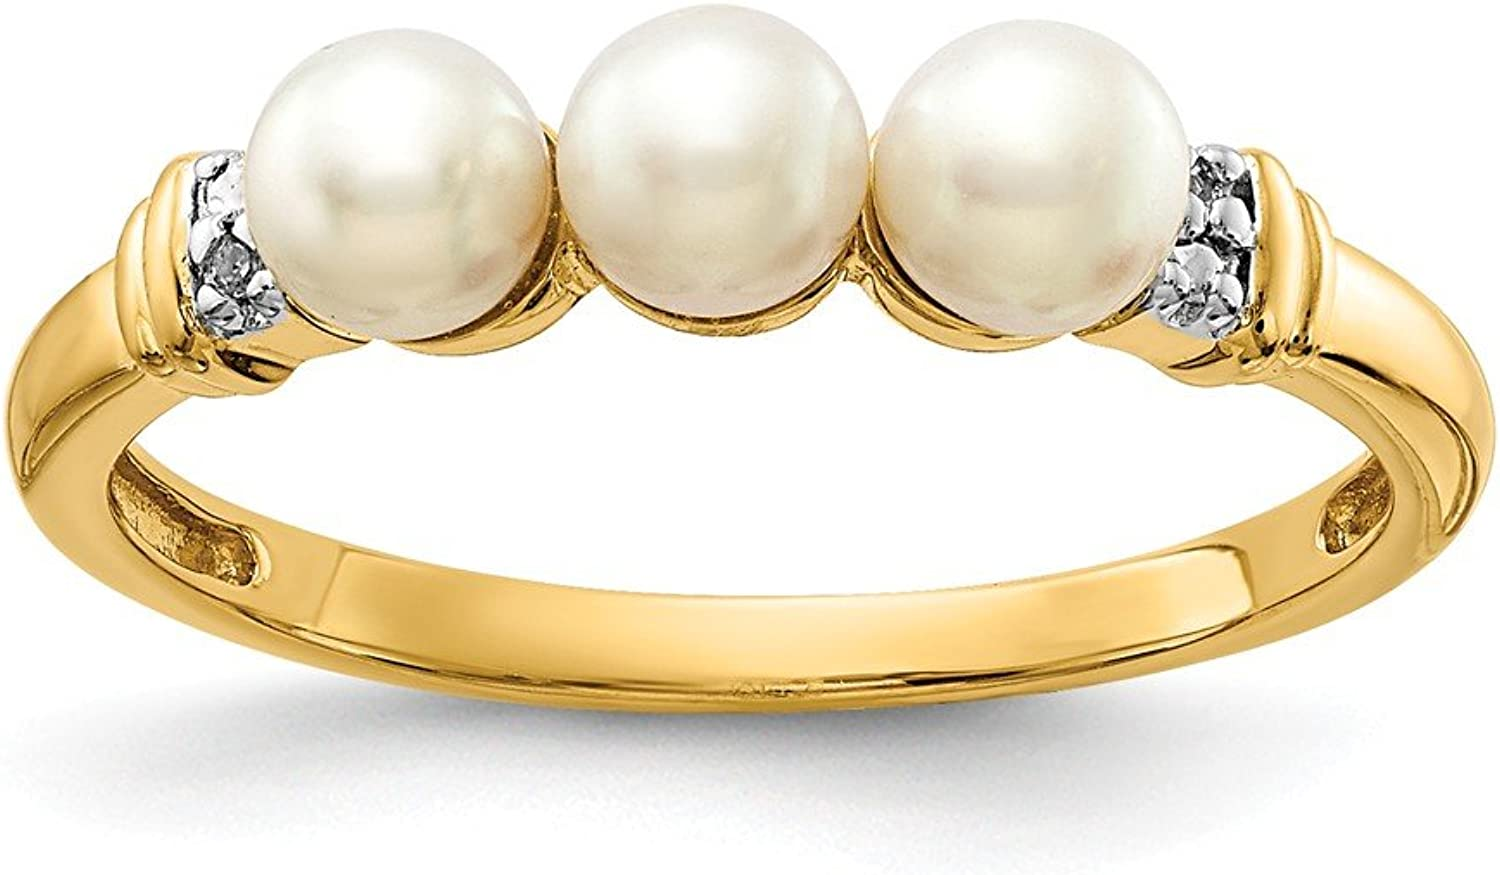 14k Diamond and FW Cultured Pearl Ring   Diamond Ctw. 0.01